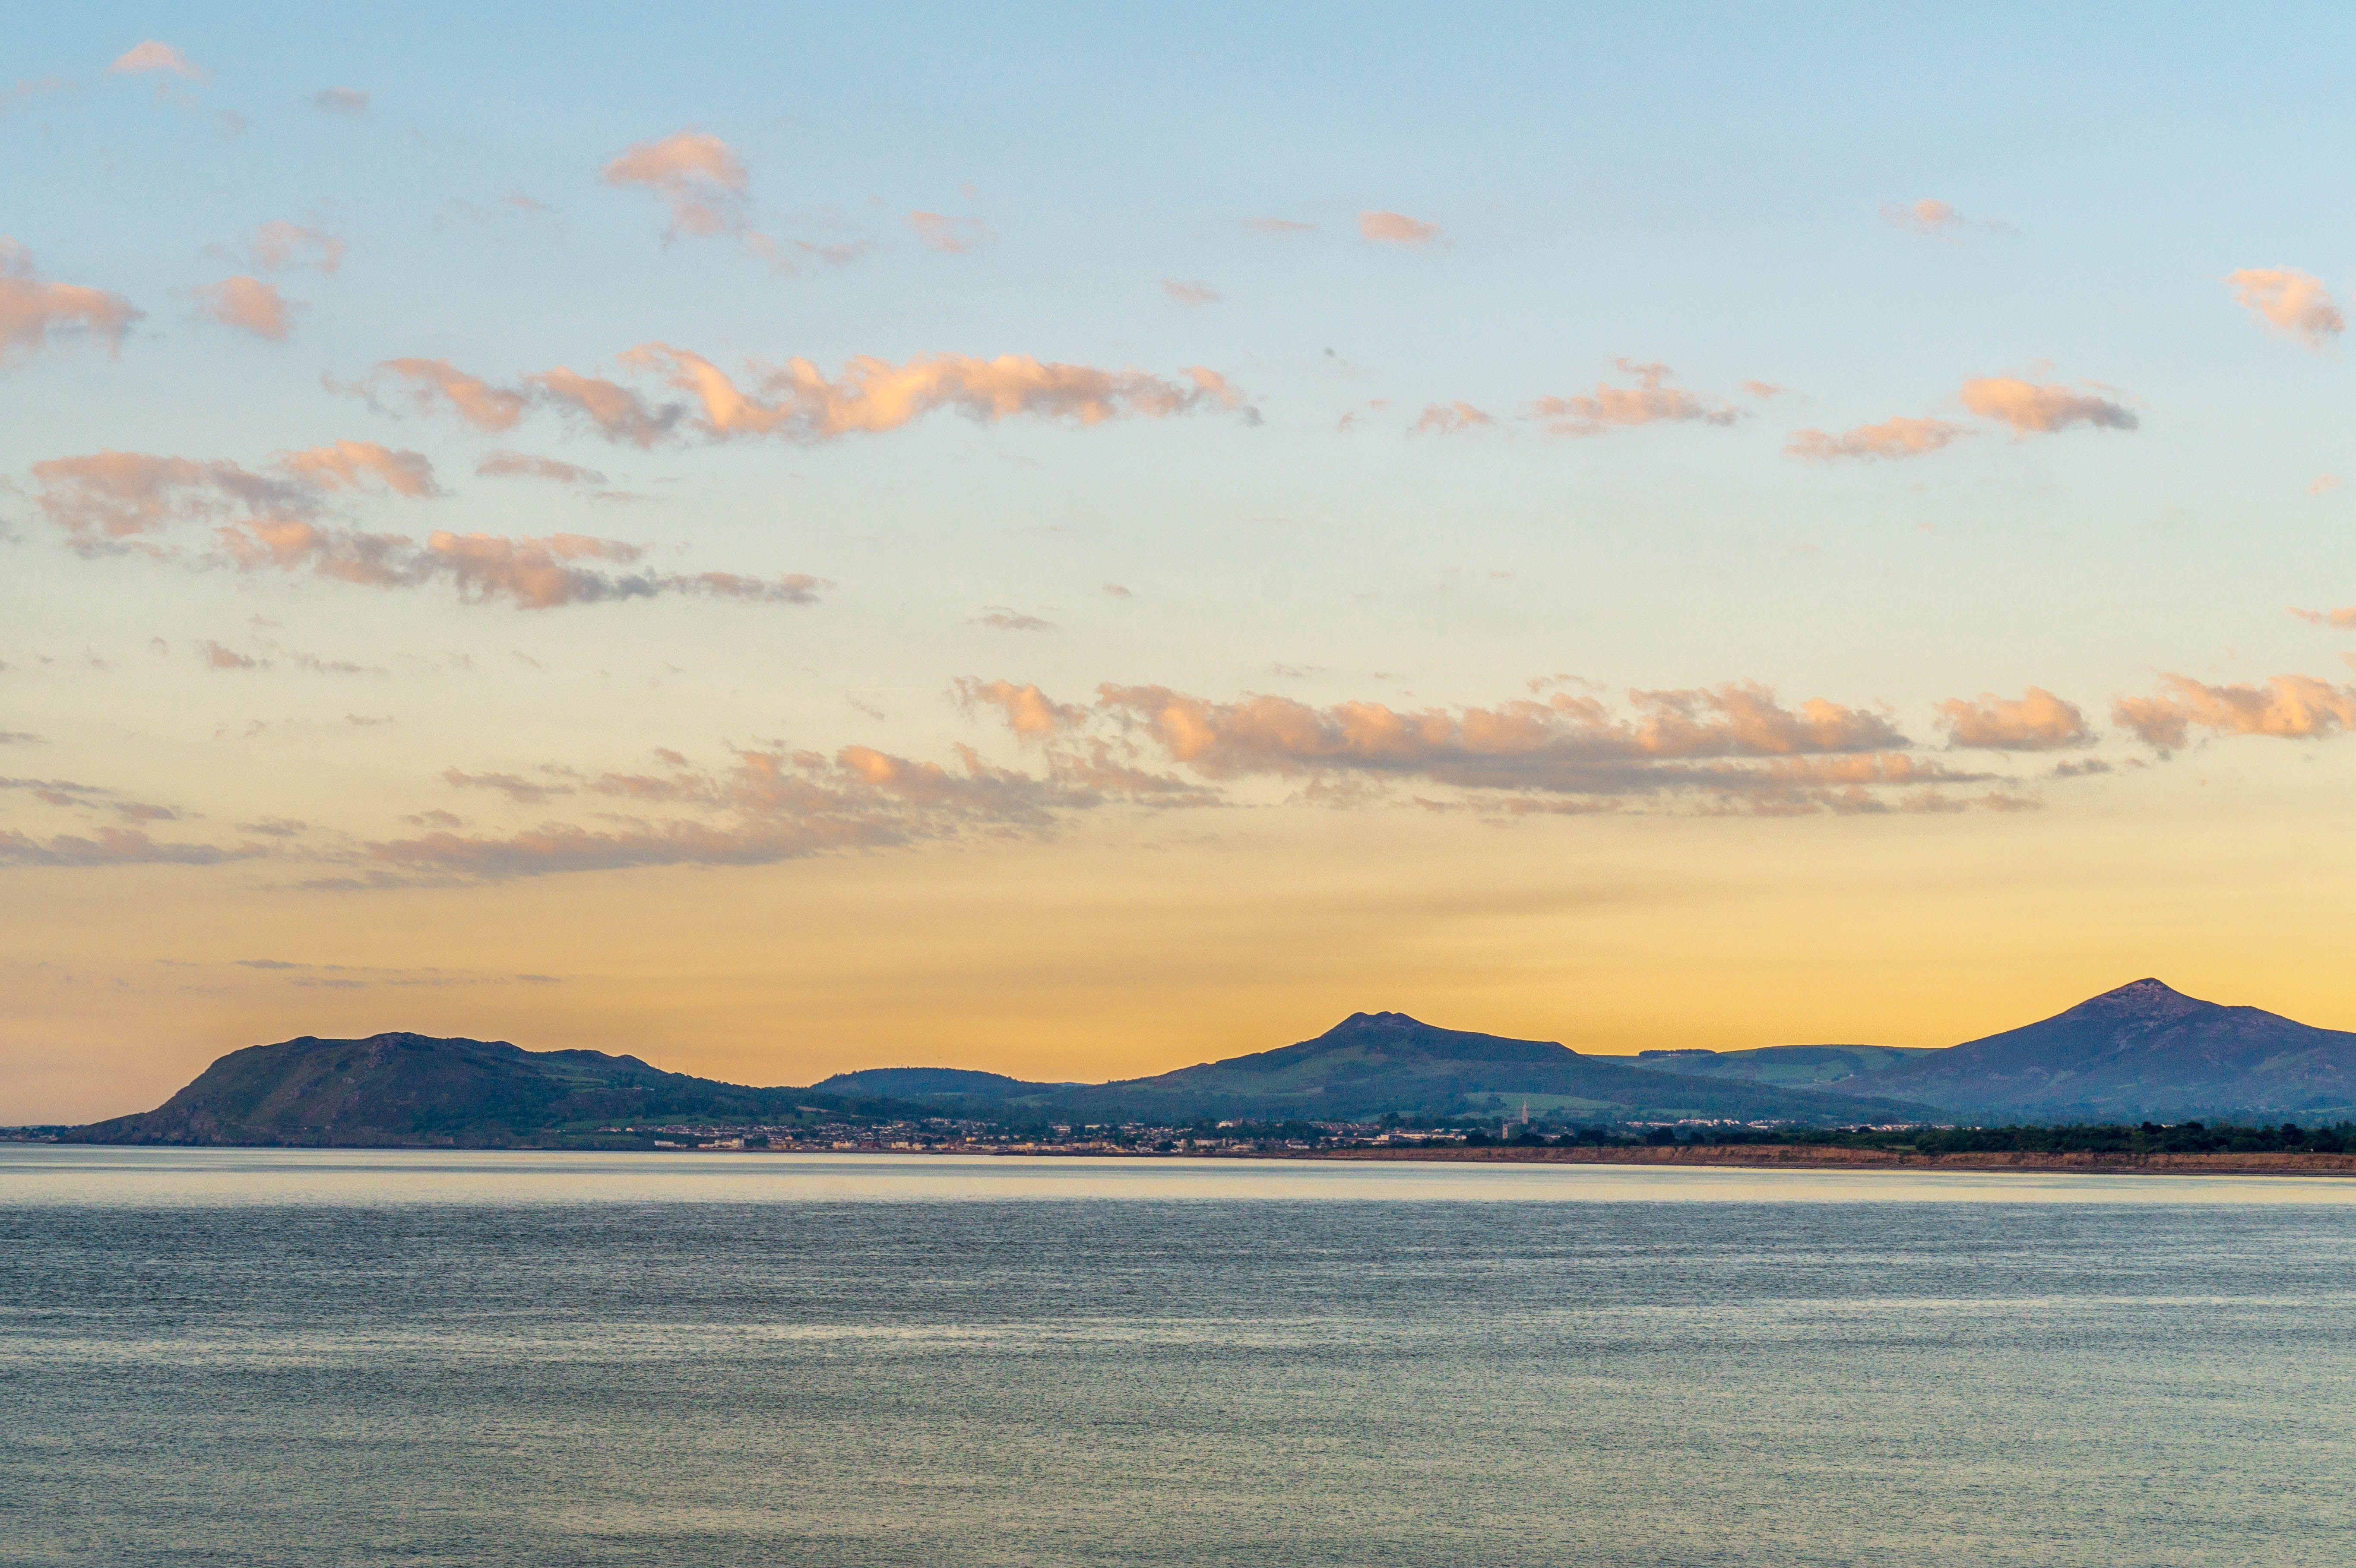 Daybreak looking towards Bray Head and the Sugarloaf